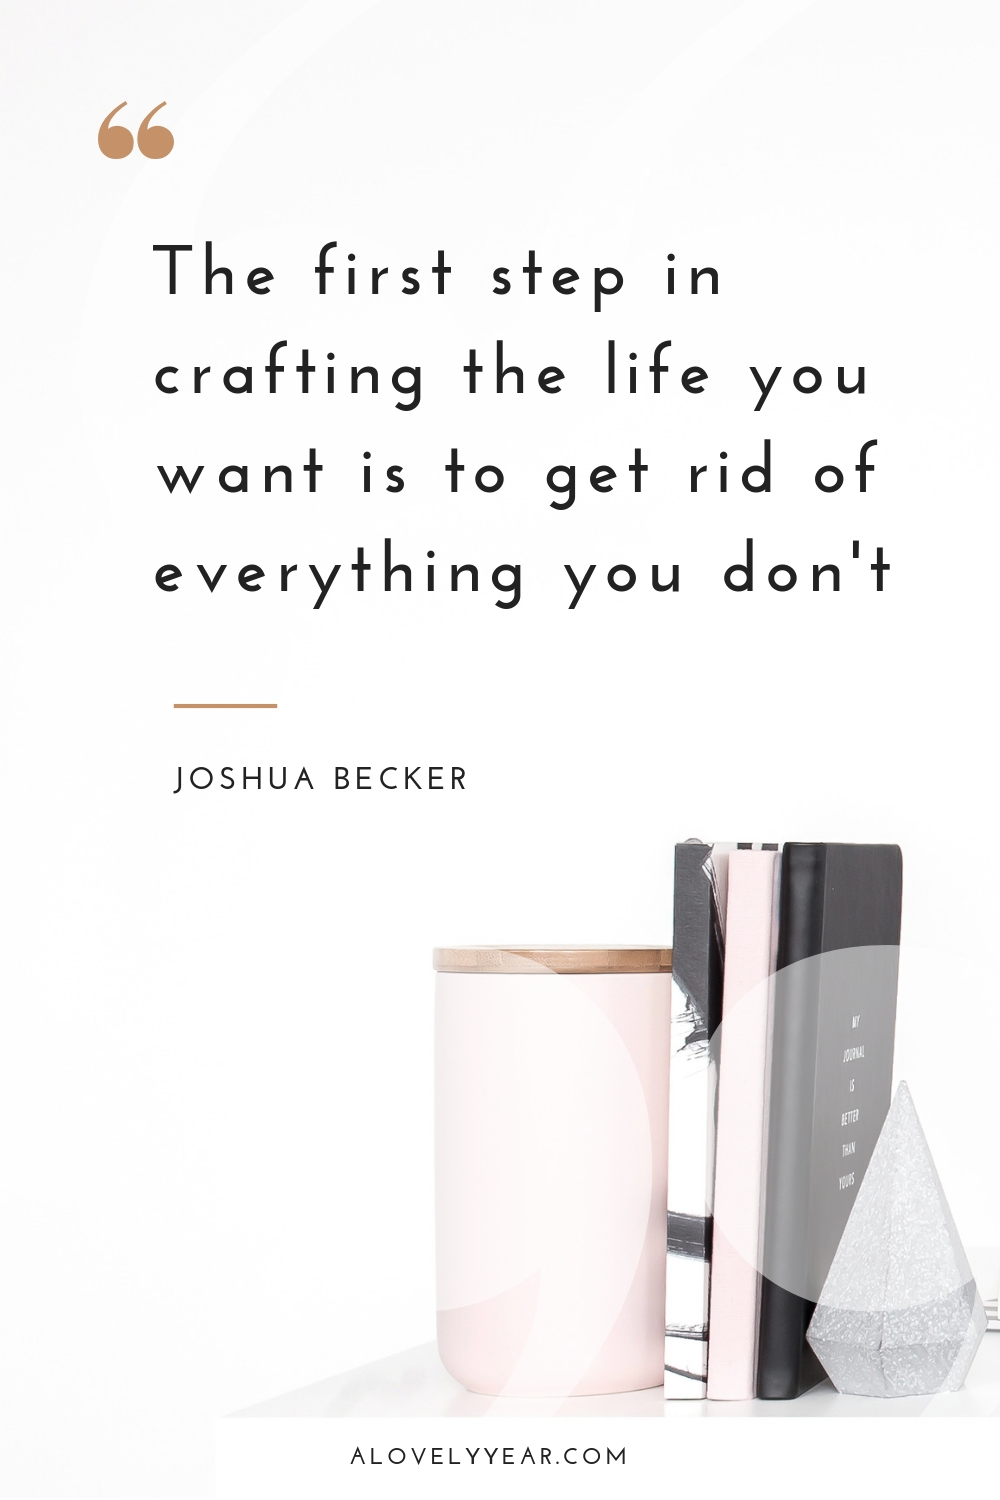 10 Decluttering Quotes to Inspire you into Action | The first step in crafting the life you want is to get rid of everything you don't - Joshua Becker